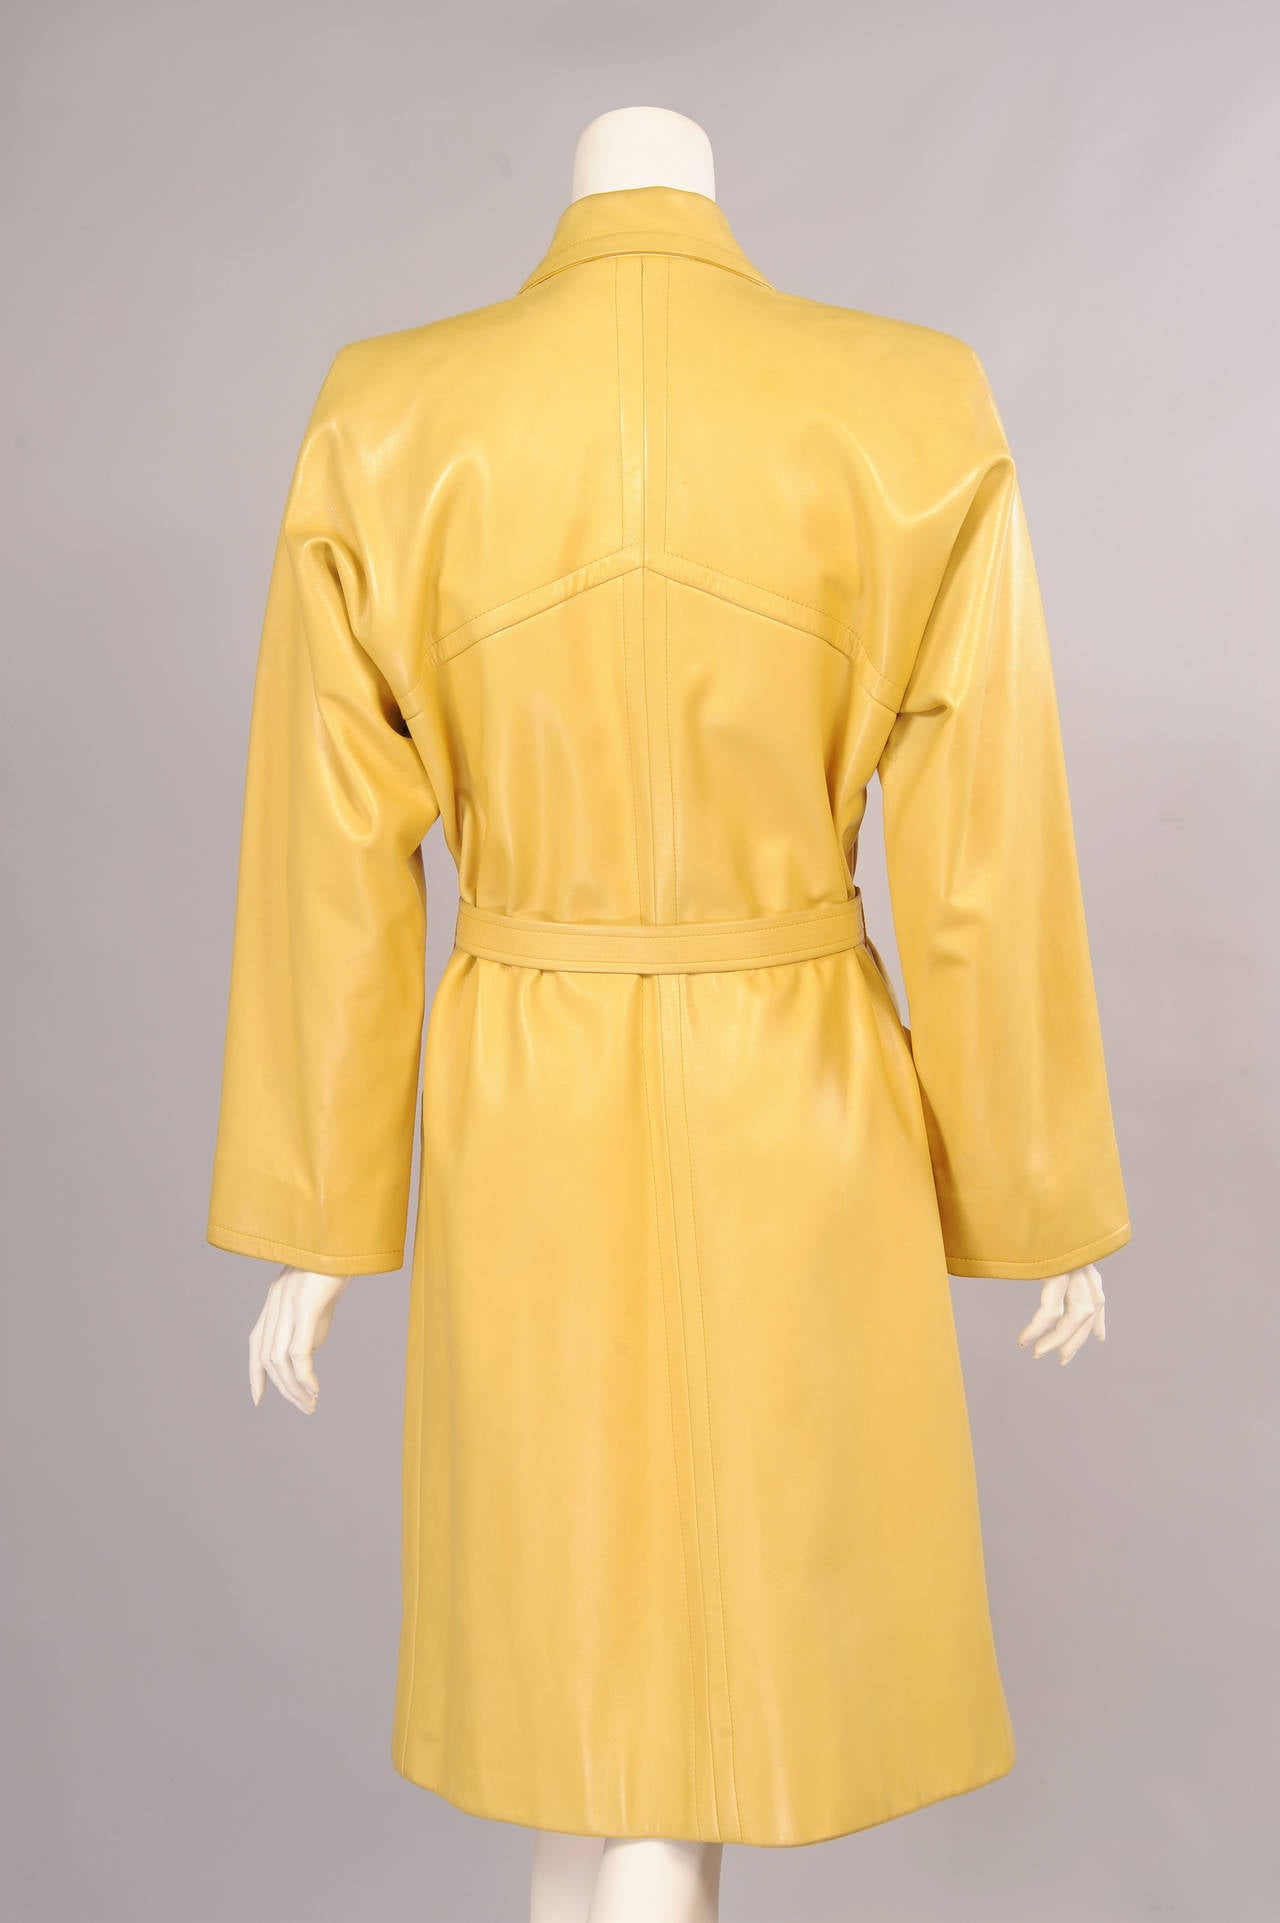 Orange Givenchy Haute Couture Runway Worn Yellow Leather Trench Coat For Sale